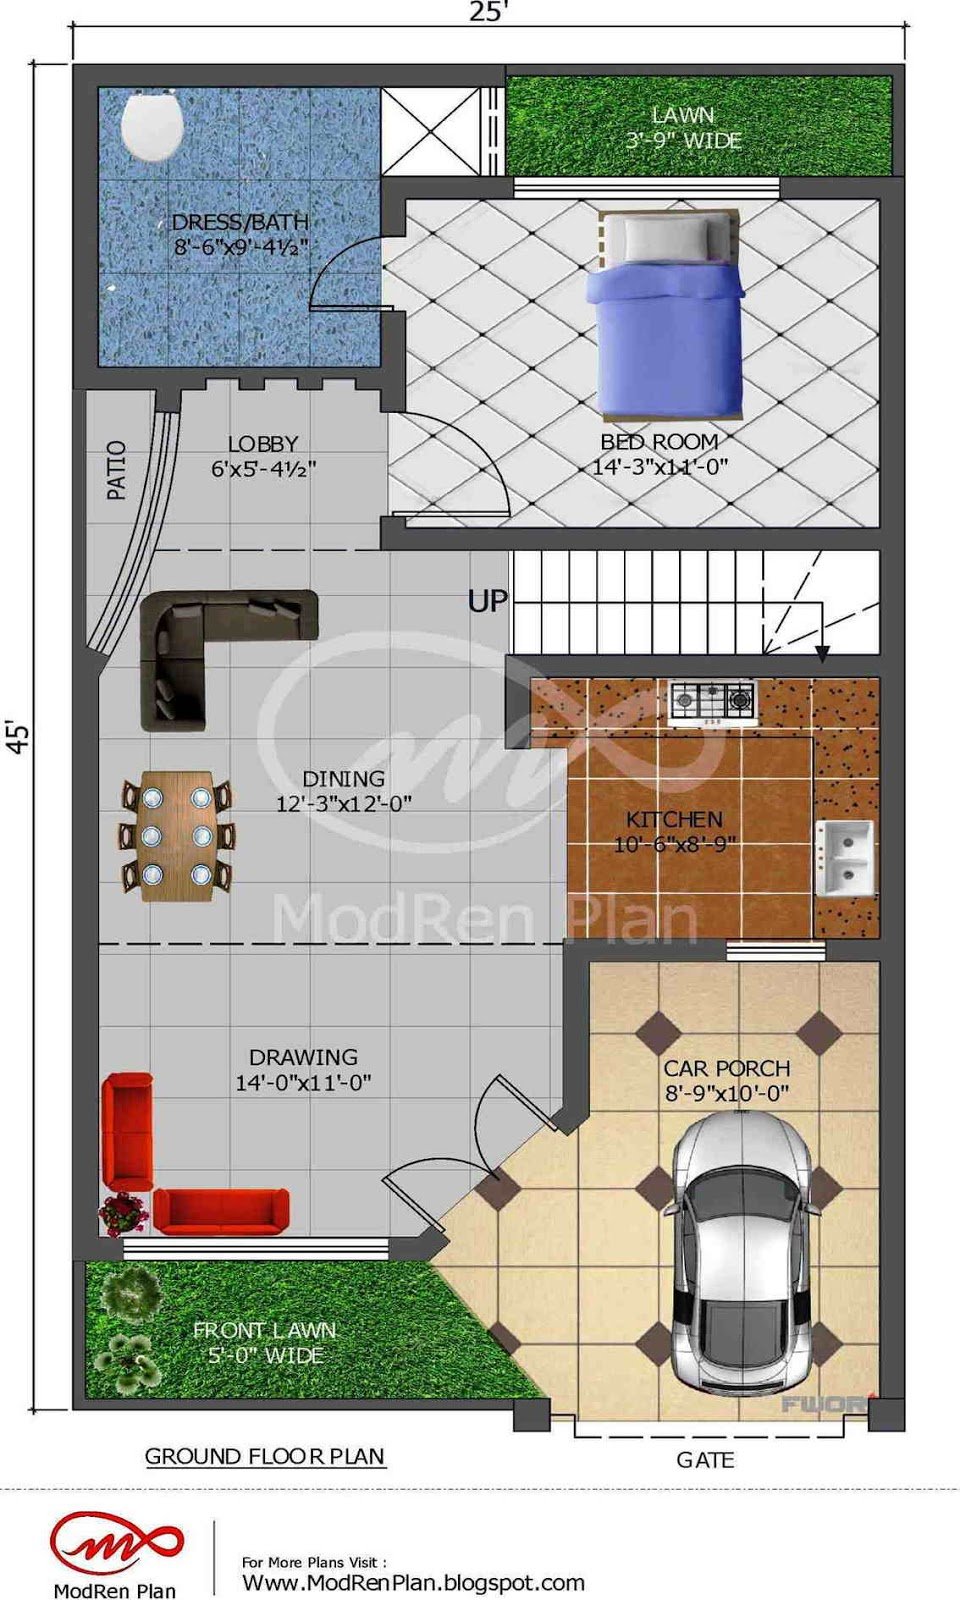 5 Marla House Plan 1200 Sq Ft 25x45 Feetwwwmodrenplan